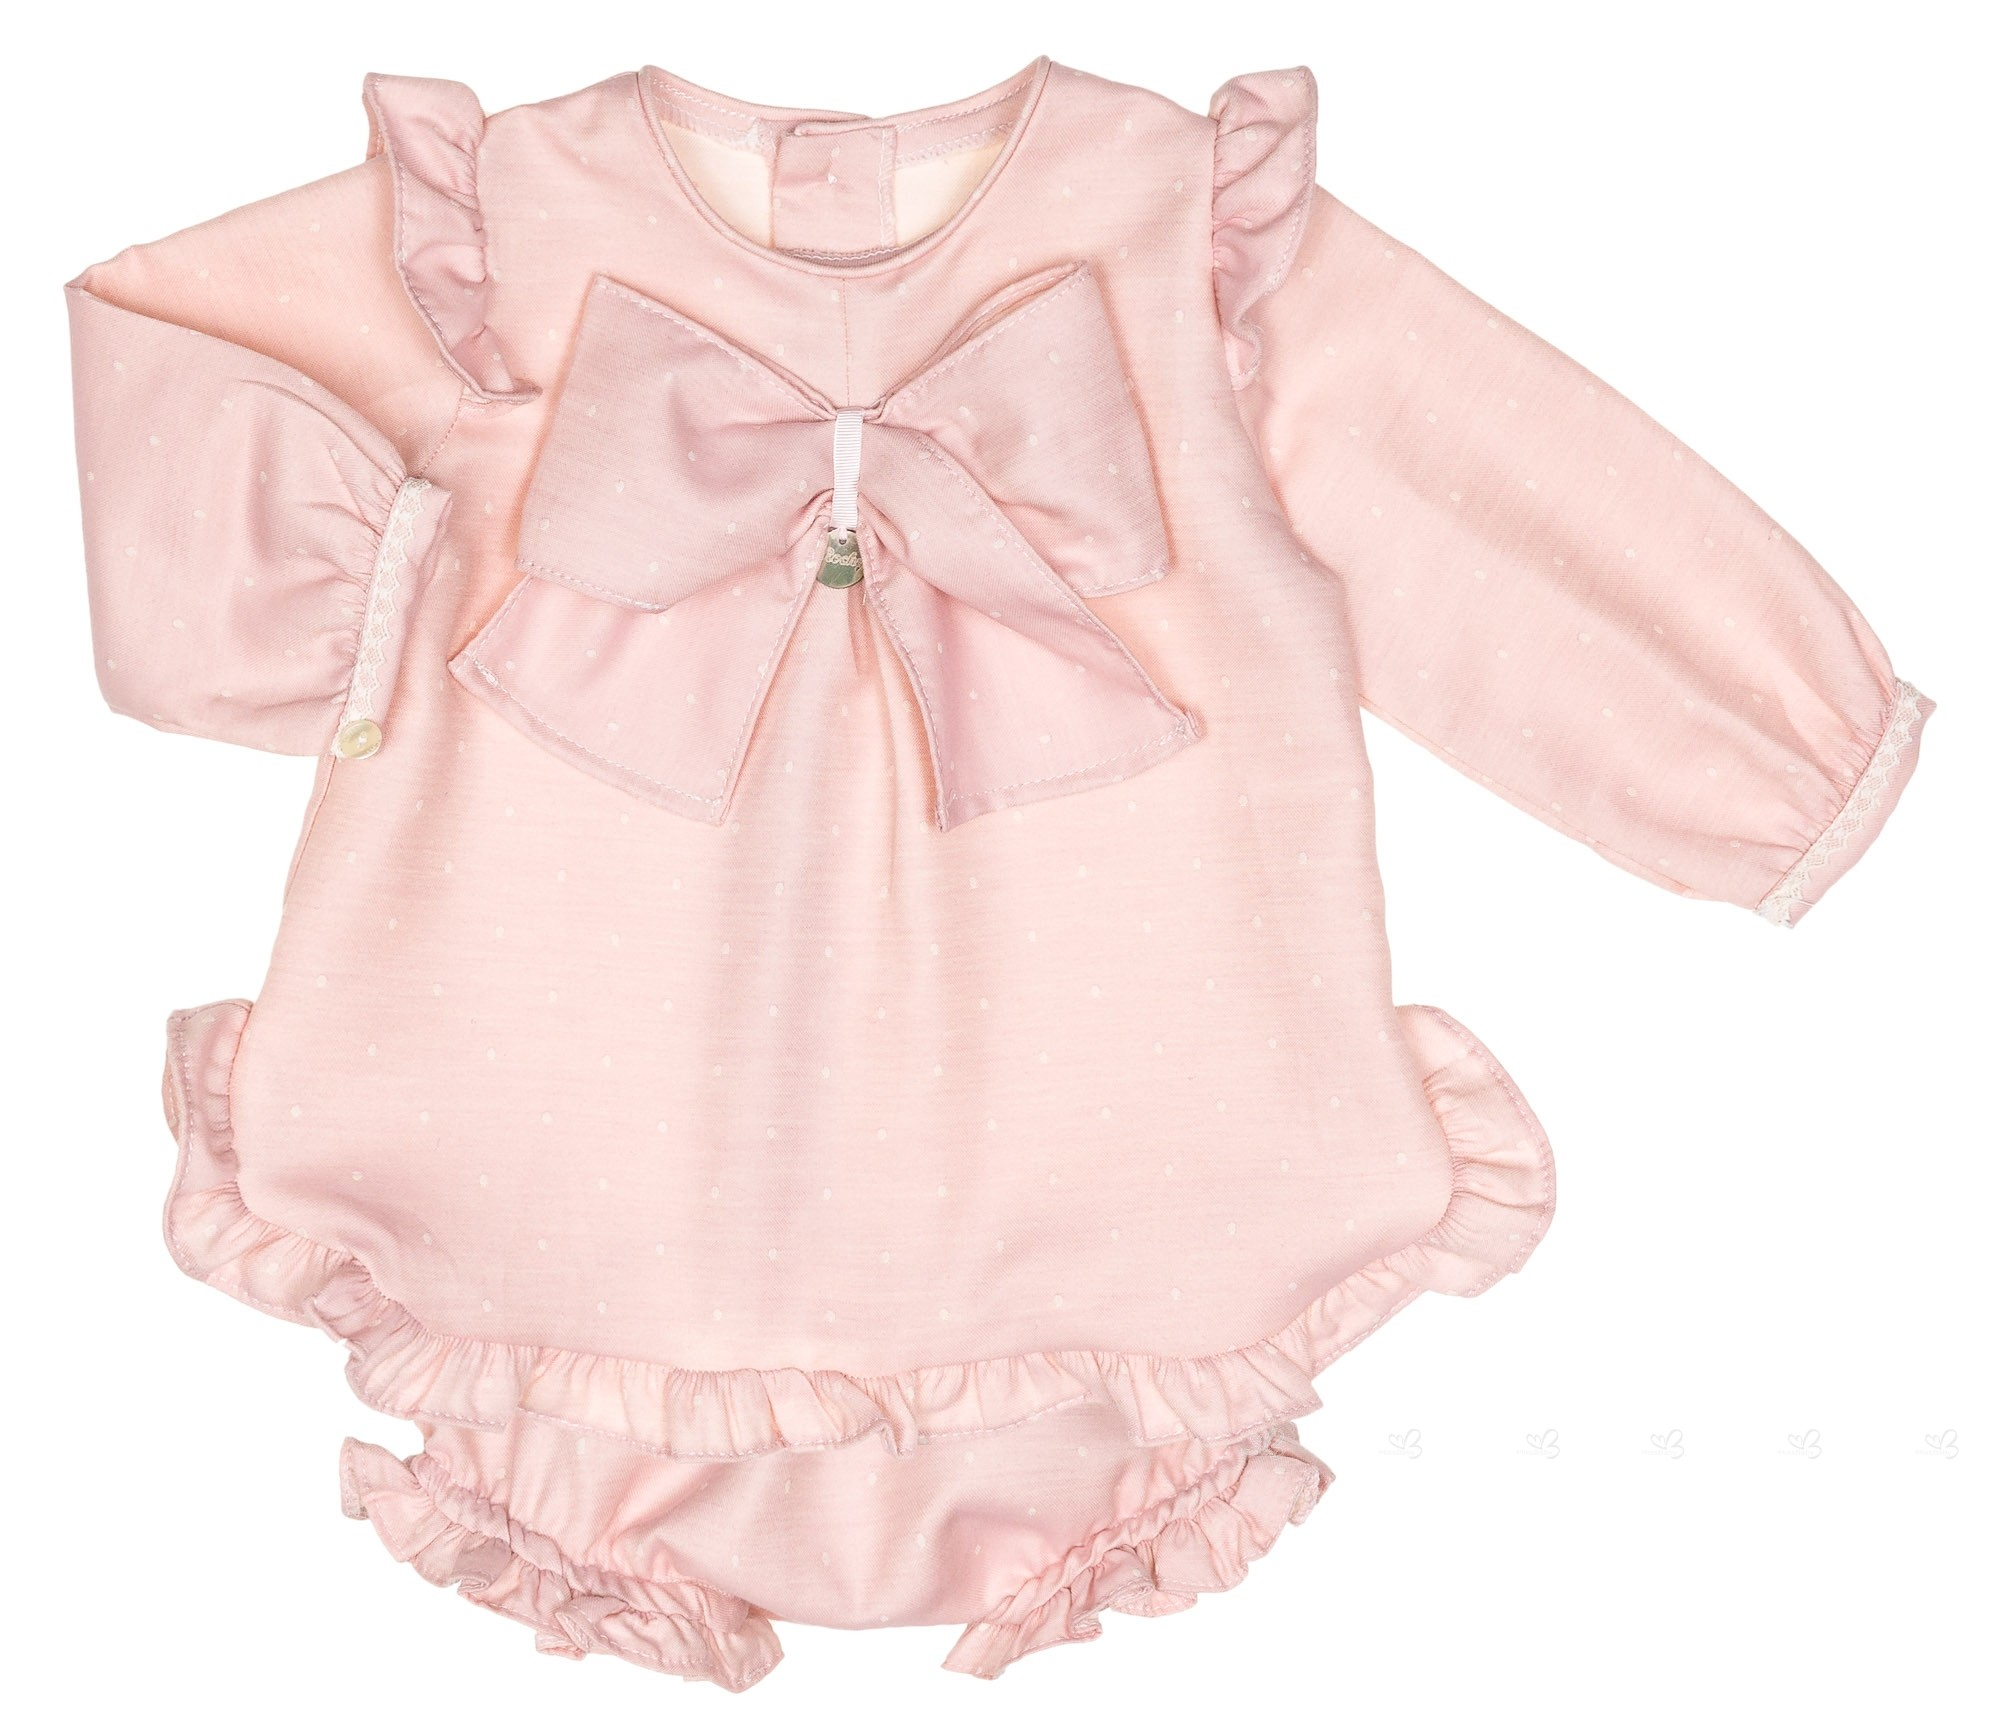 Baby Pale Pink & Ivory Polka Dot Dress Set